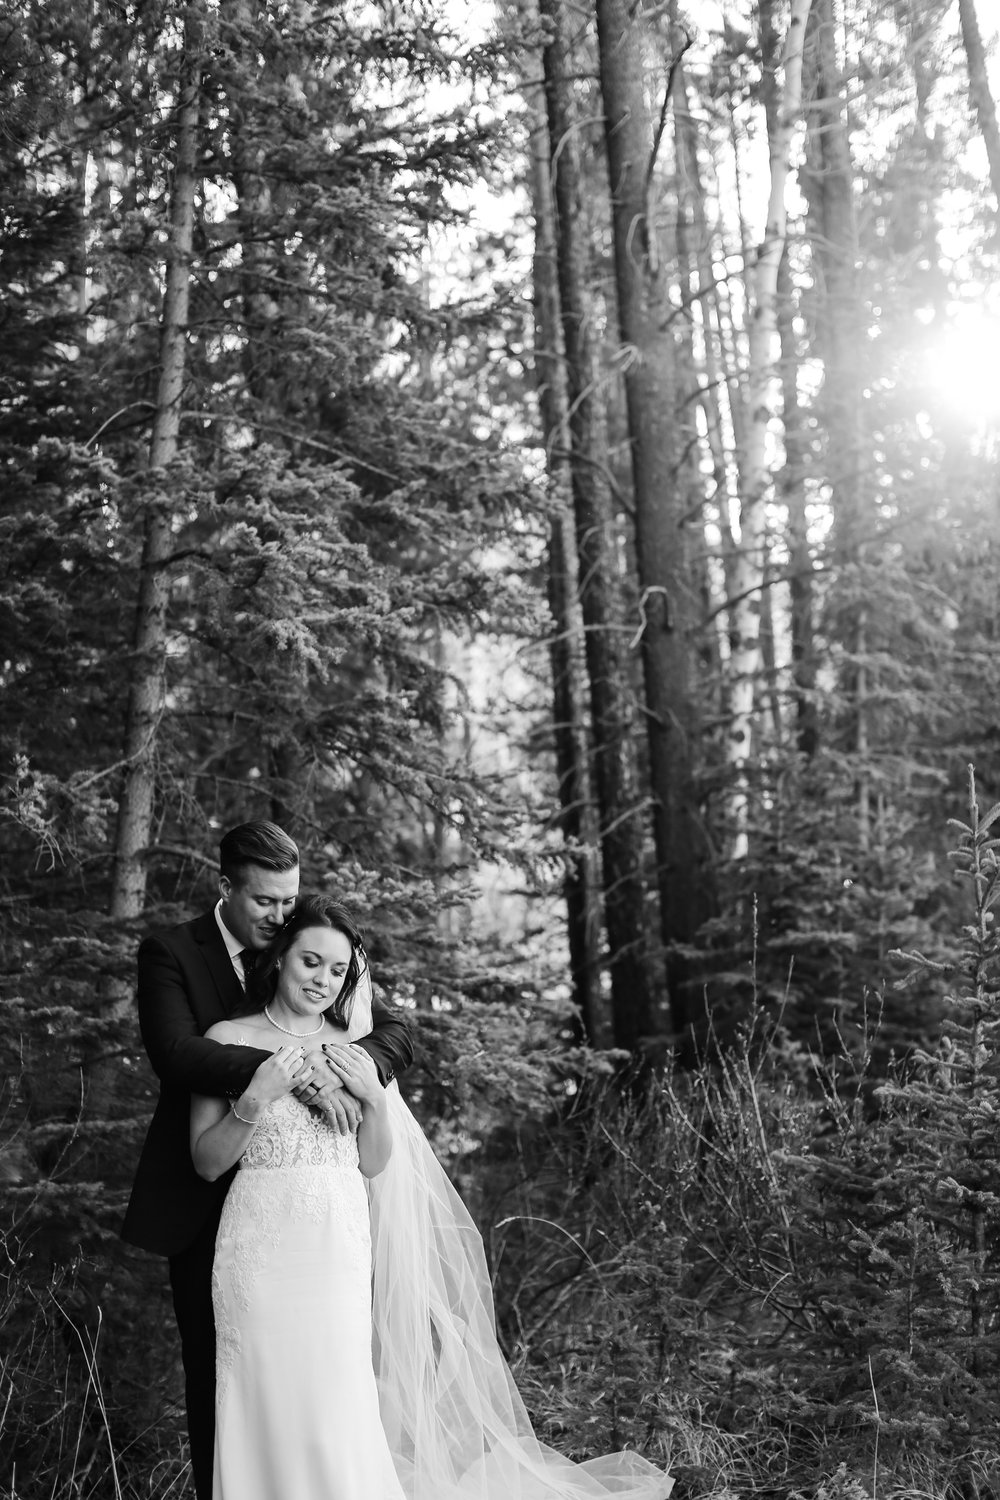 Michiala+Matt-Wedding-55.jpg